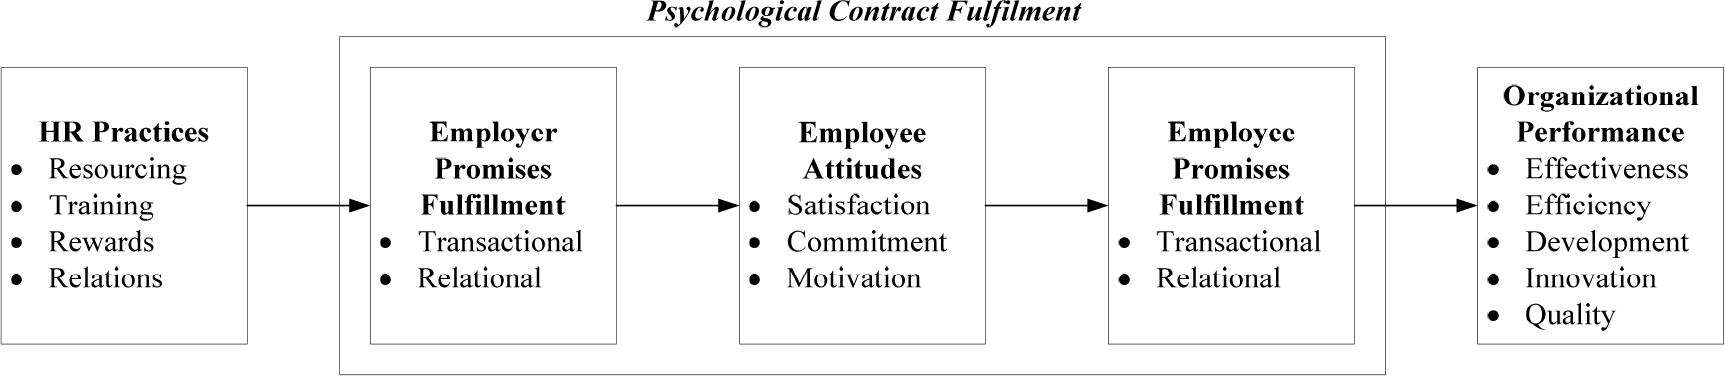 psychological contract breach dissertation